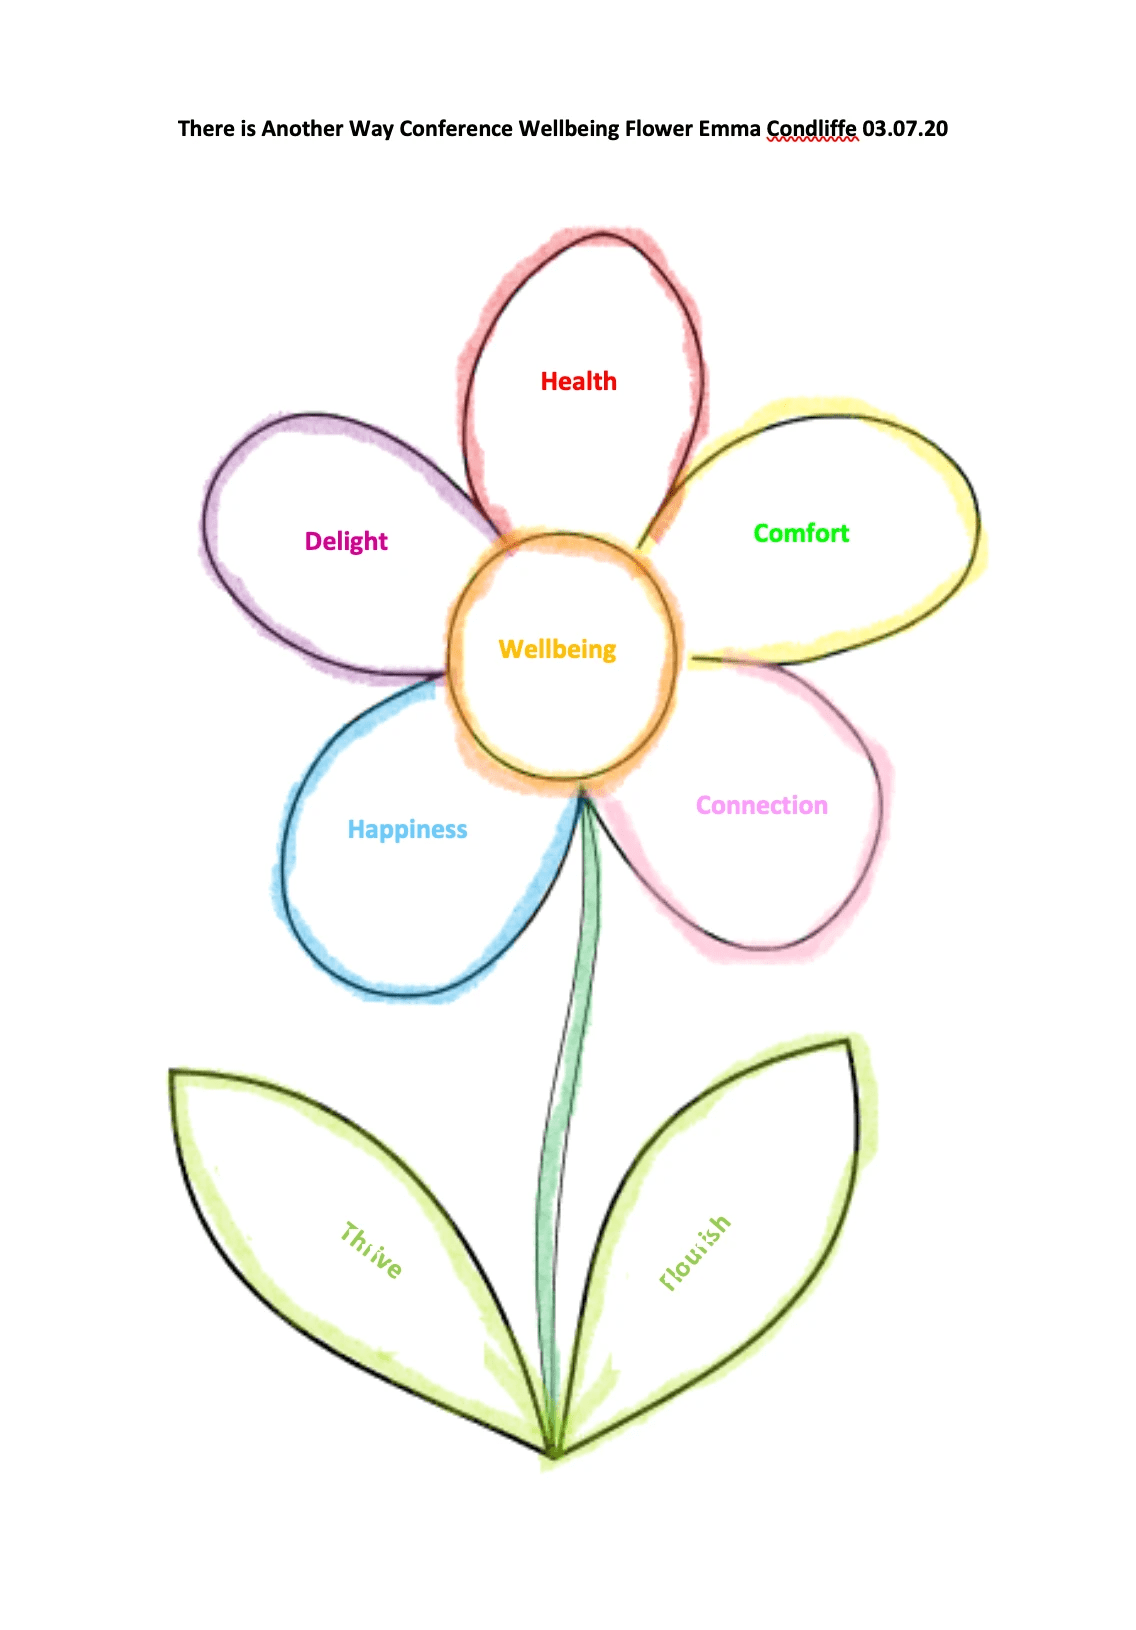 There is Another Way Conference Flower Graphic of Wellbeing Emma Condliffe 03.07.20